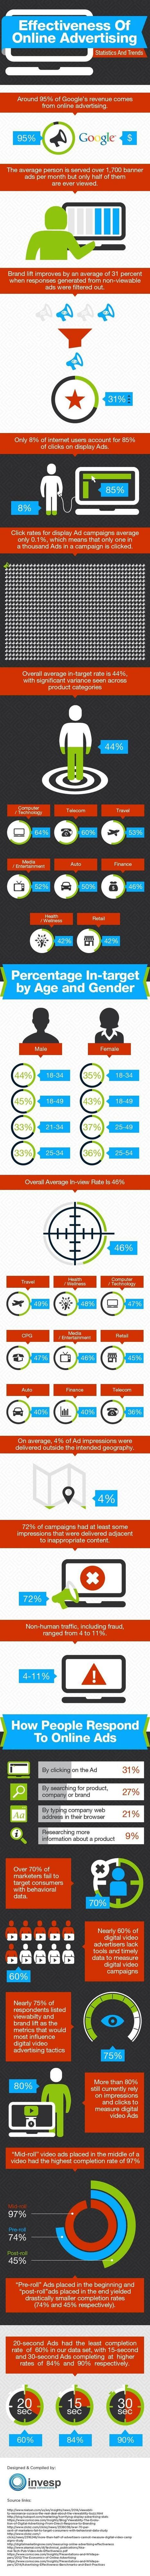 Effectiveness Of Online Advertising #infographic | MarketingHits | Scoop.it